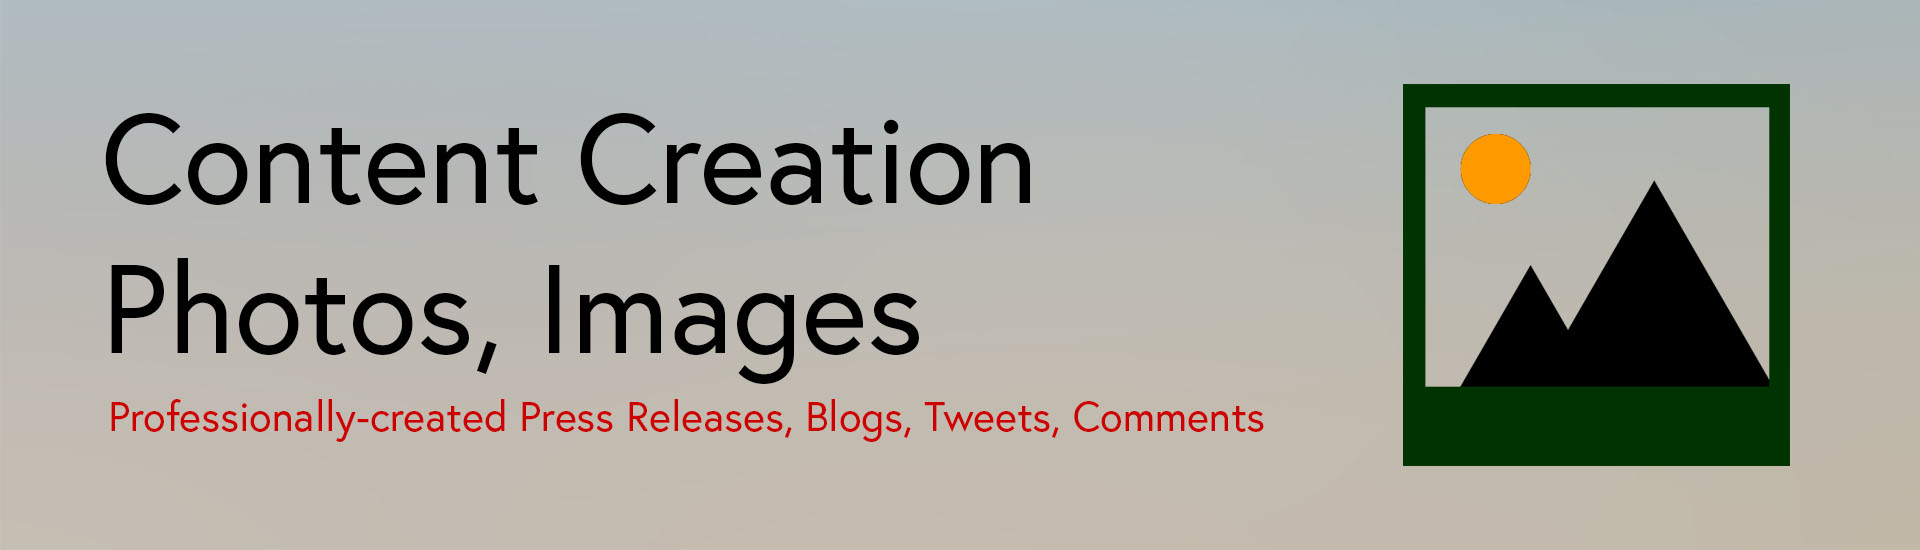 Content Creation - Photos, Images